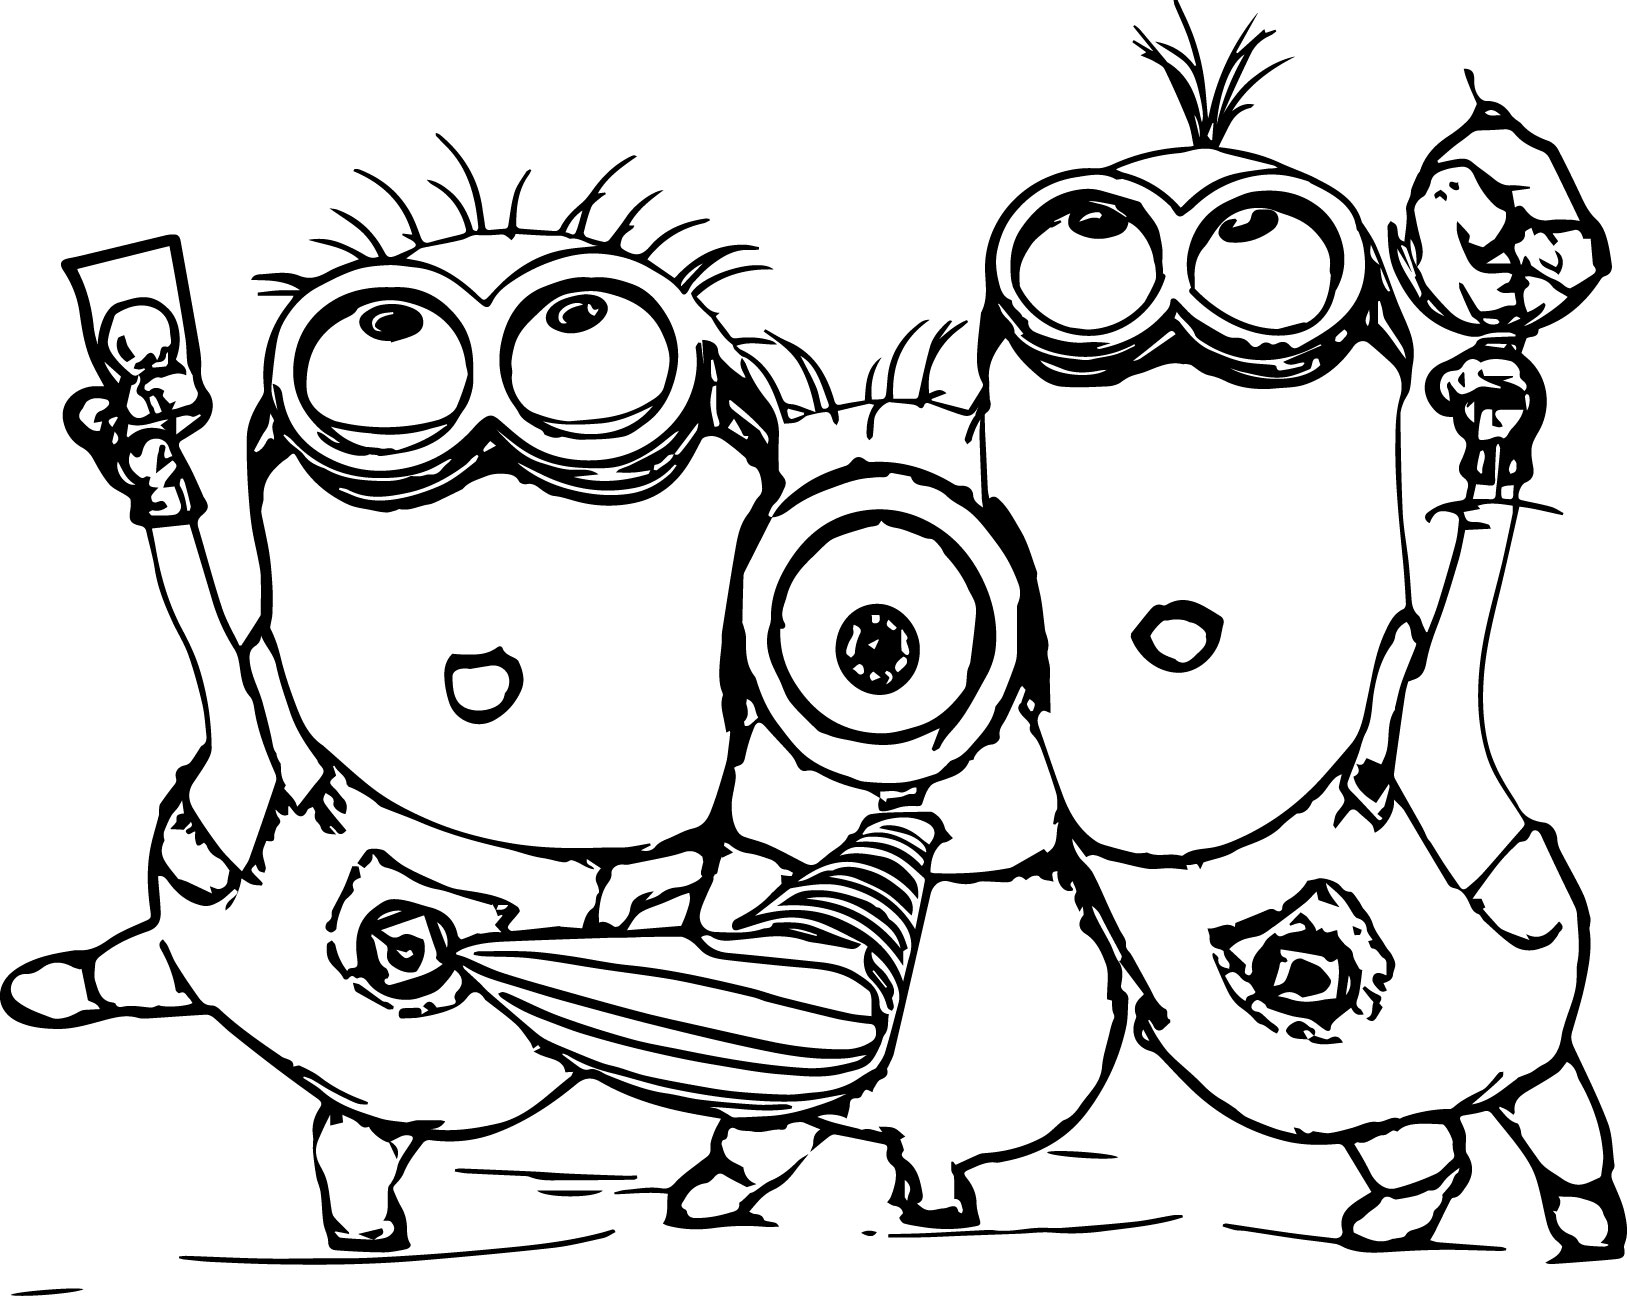 Vampire minion coloring pages download